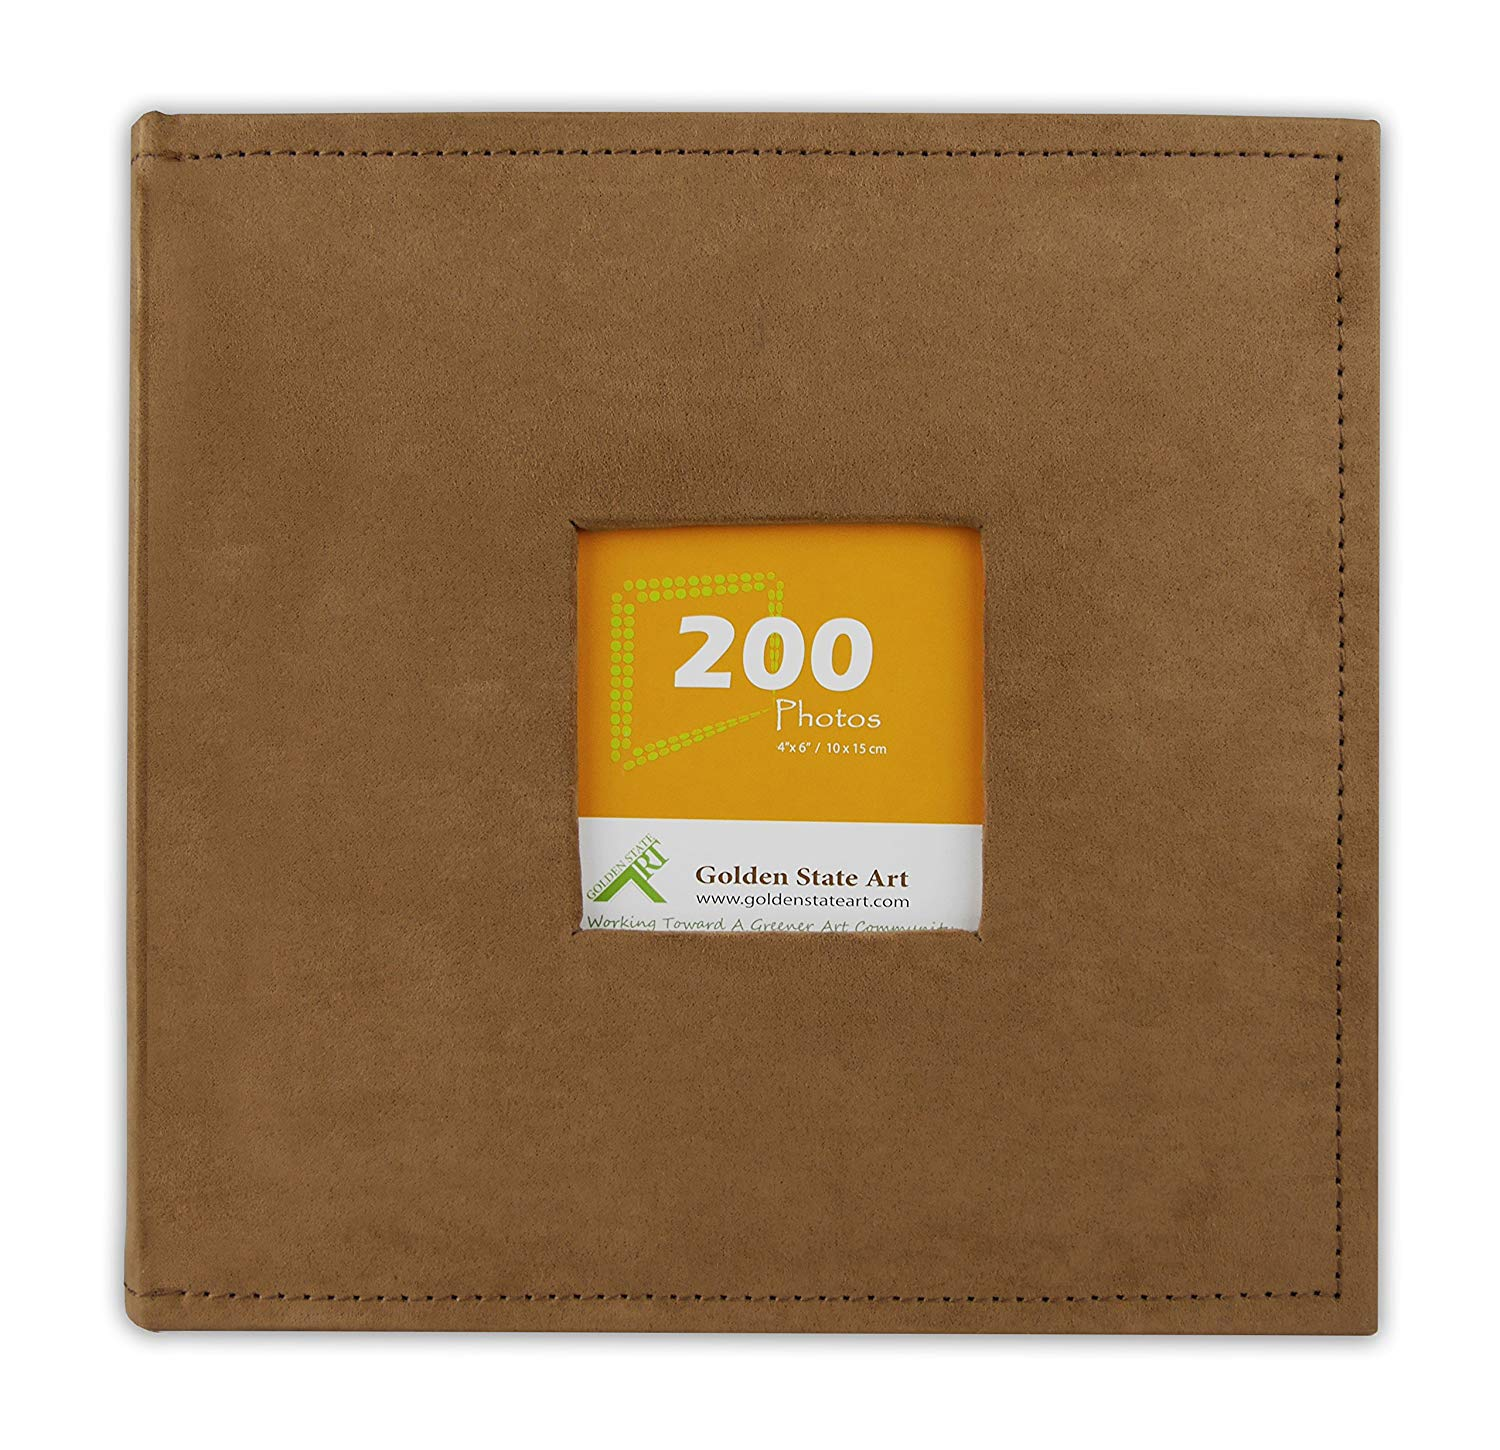 Golden State Art, Photo Album Rusty Bronze Suede Cover, Holds 200 4x6 Pictures V2-N55018-3 RB